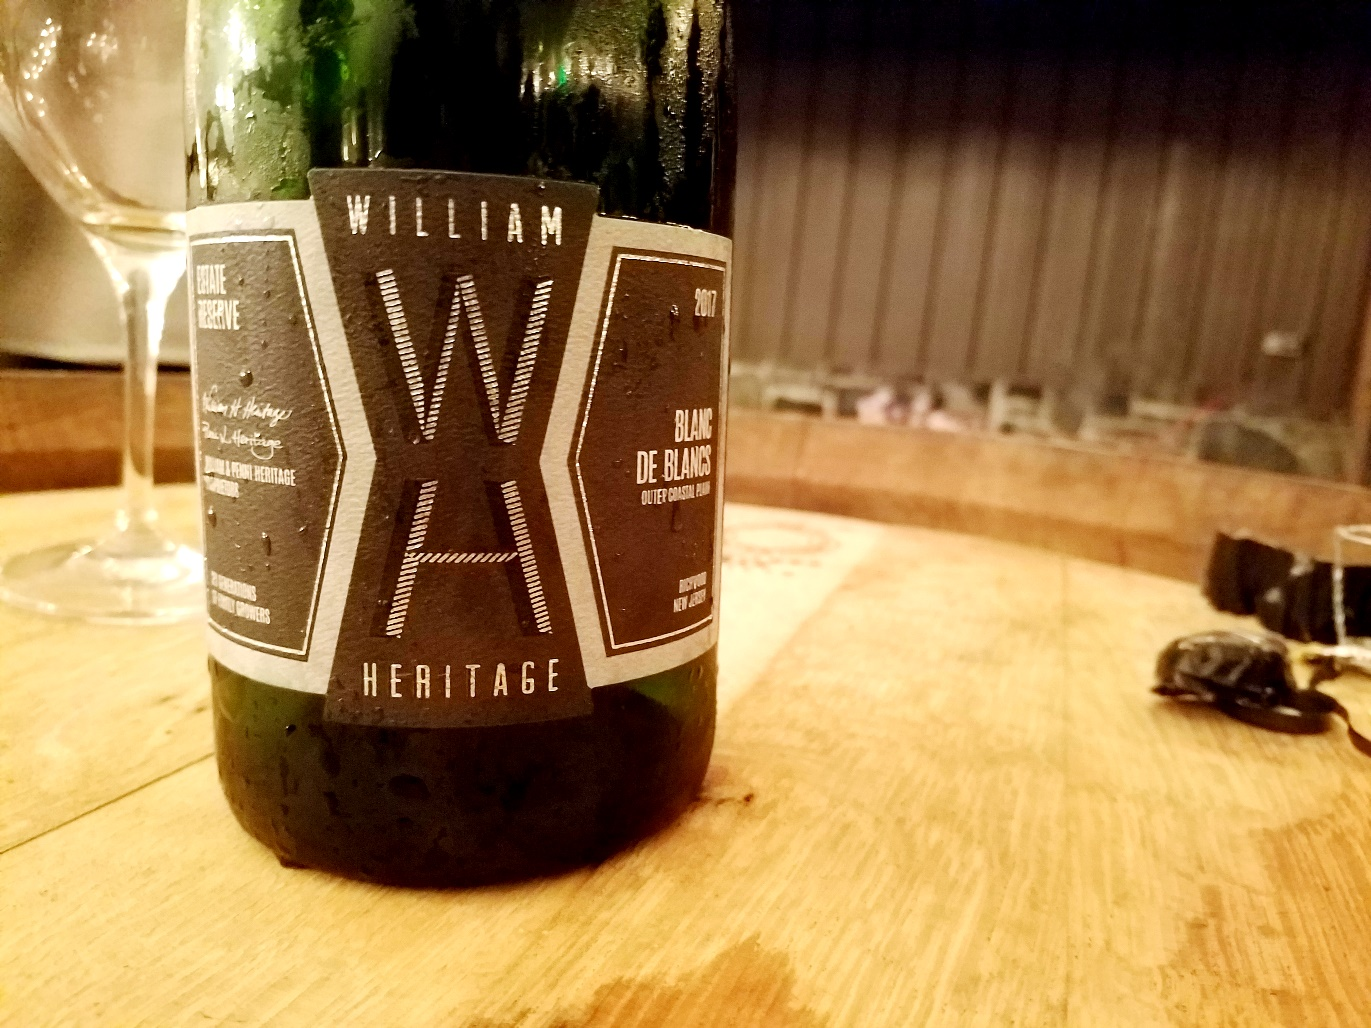 William Heritage, Estate Reserve Blanc de Blancs 2017, Outer Coastal Plain, New Jersey, Wine Casual